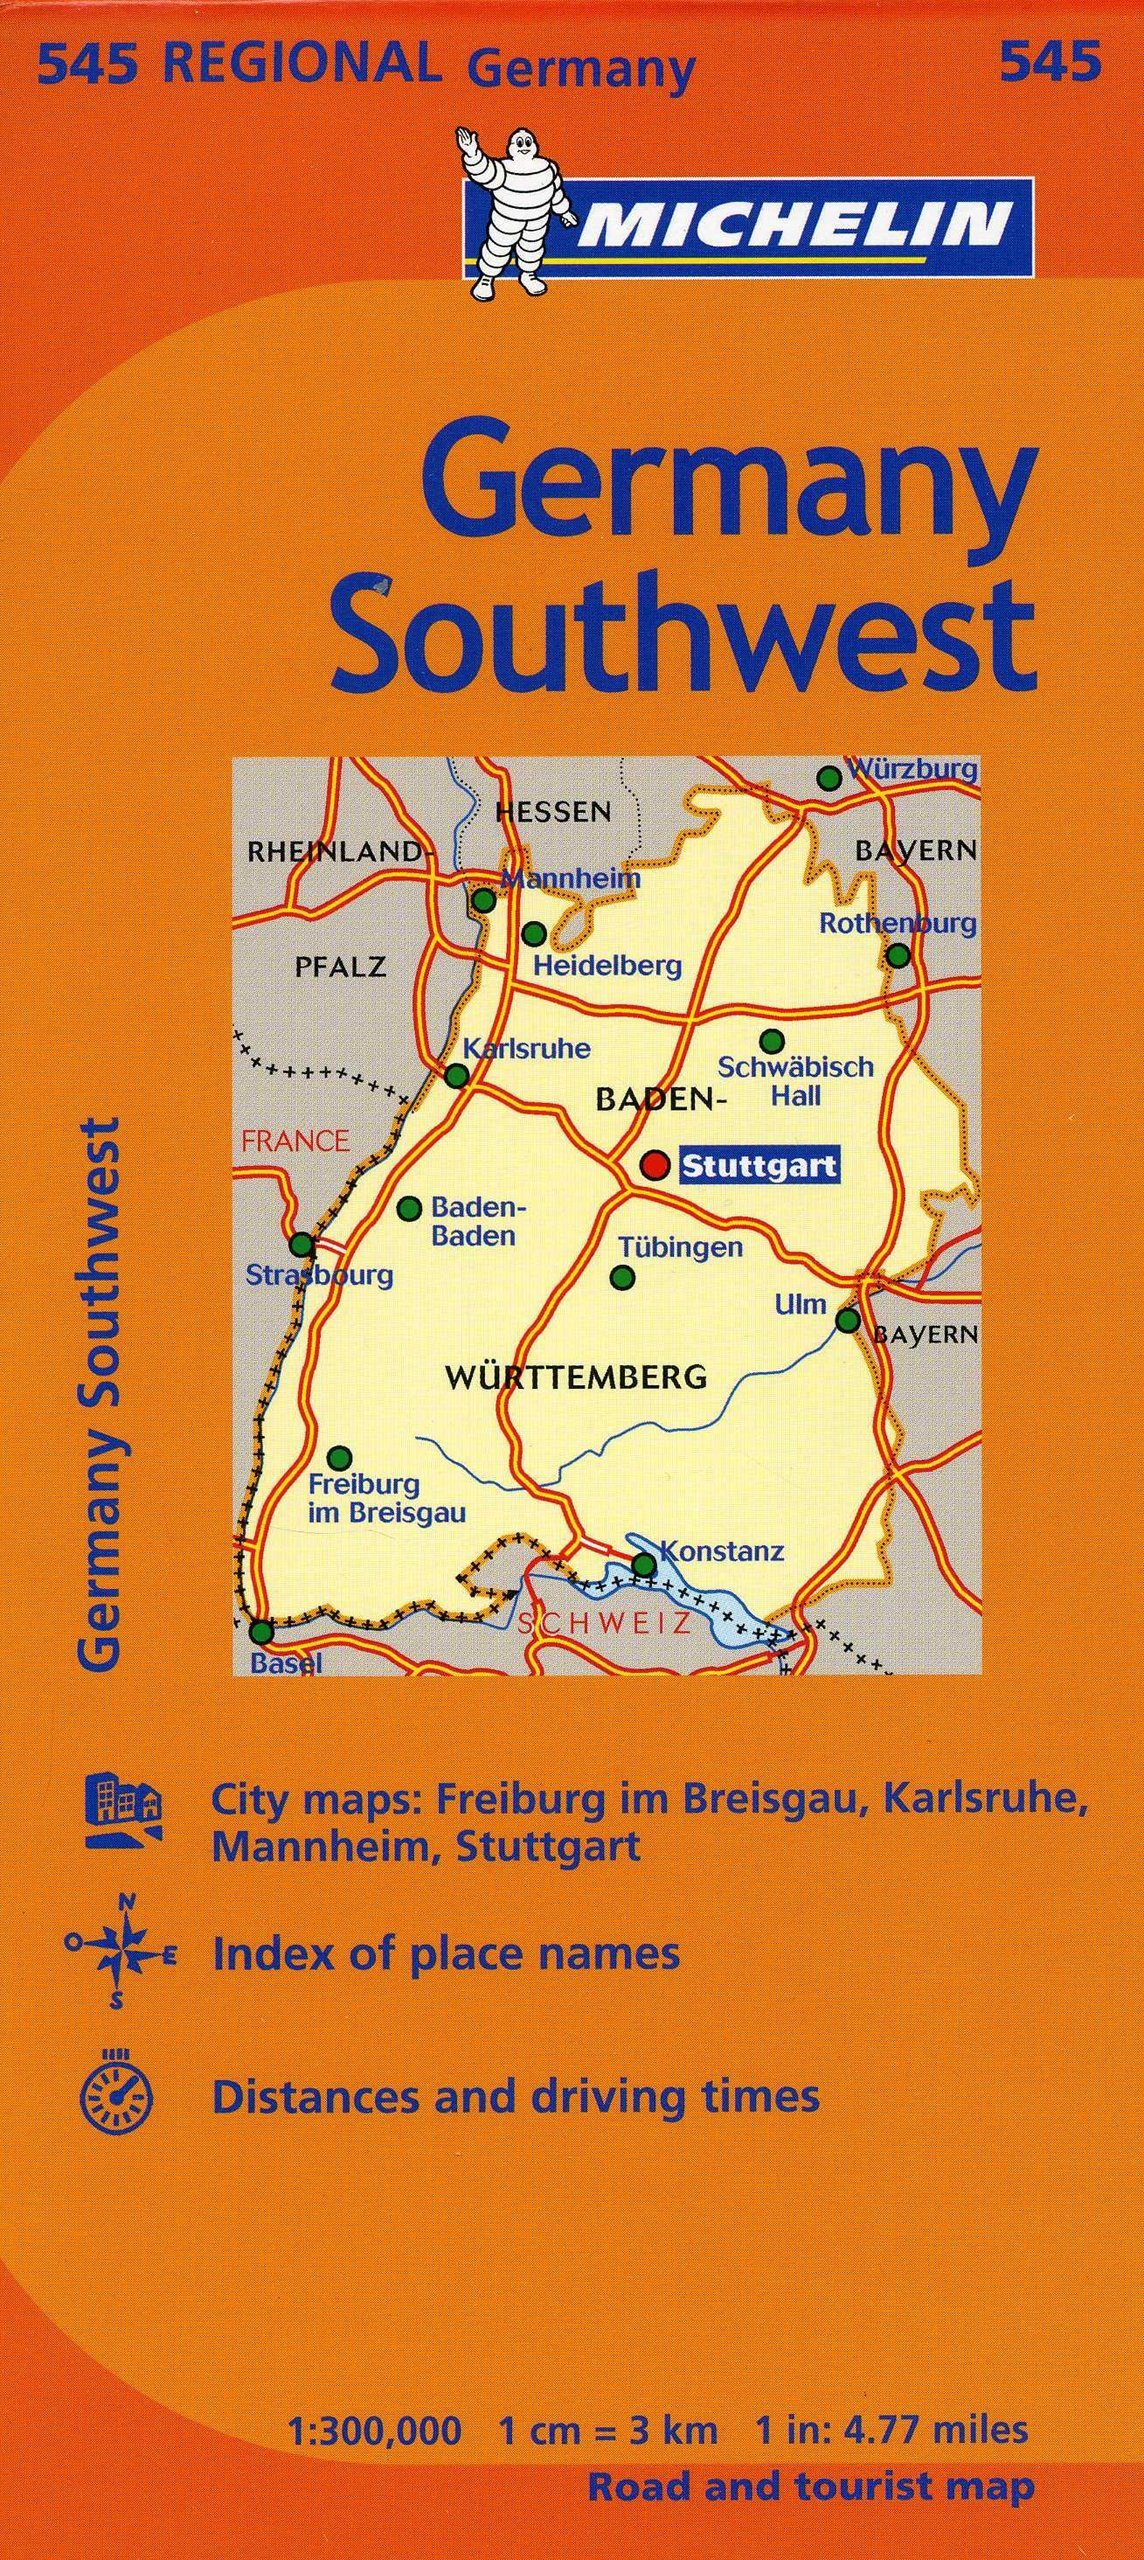 Michelin Germany Southwest Map 545 MapsRegional Michelin